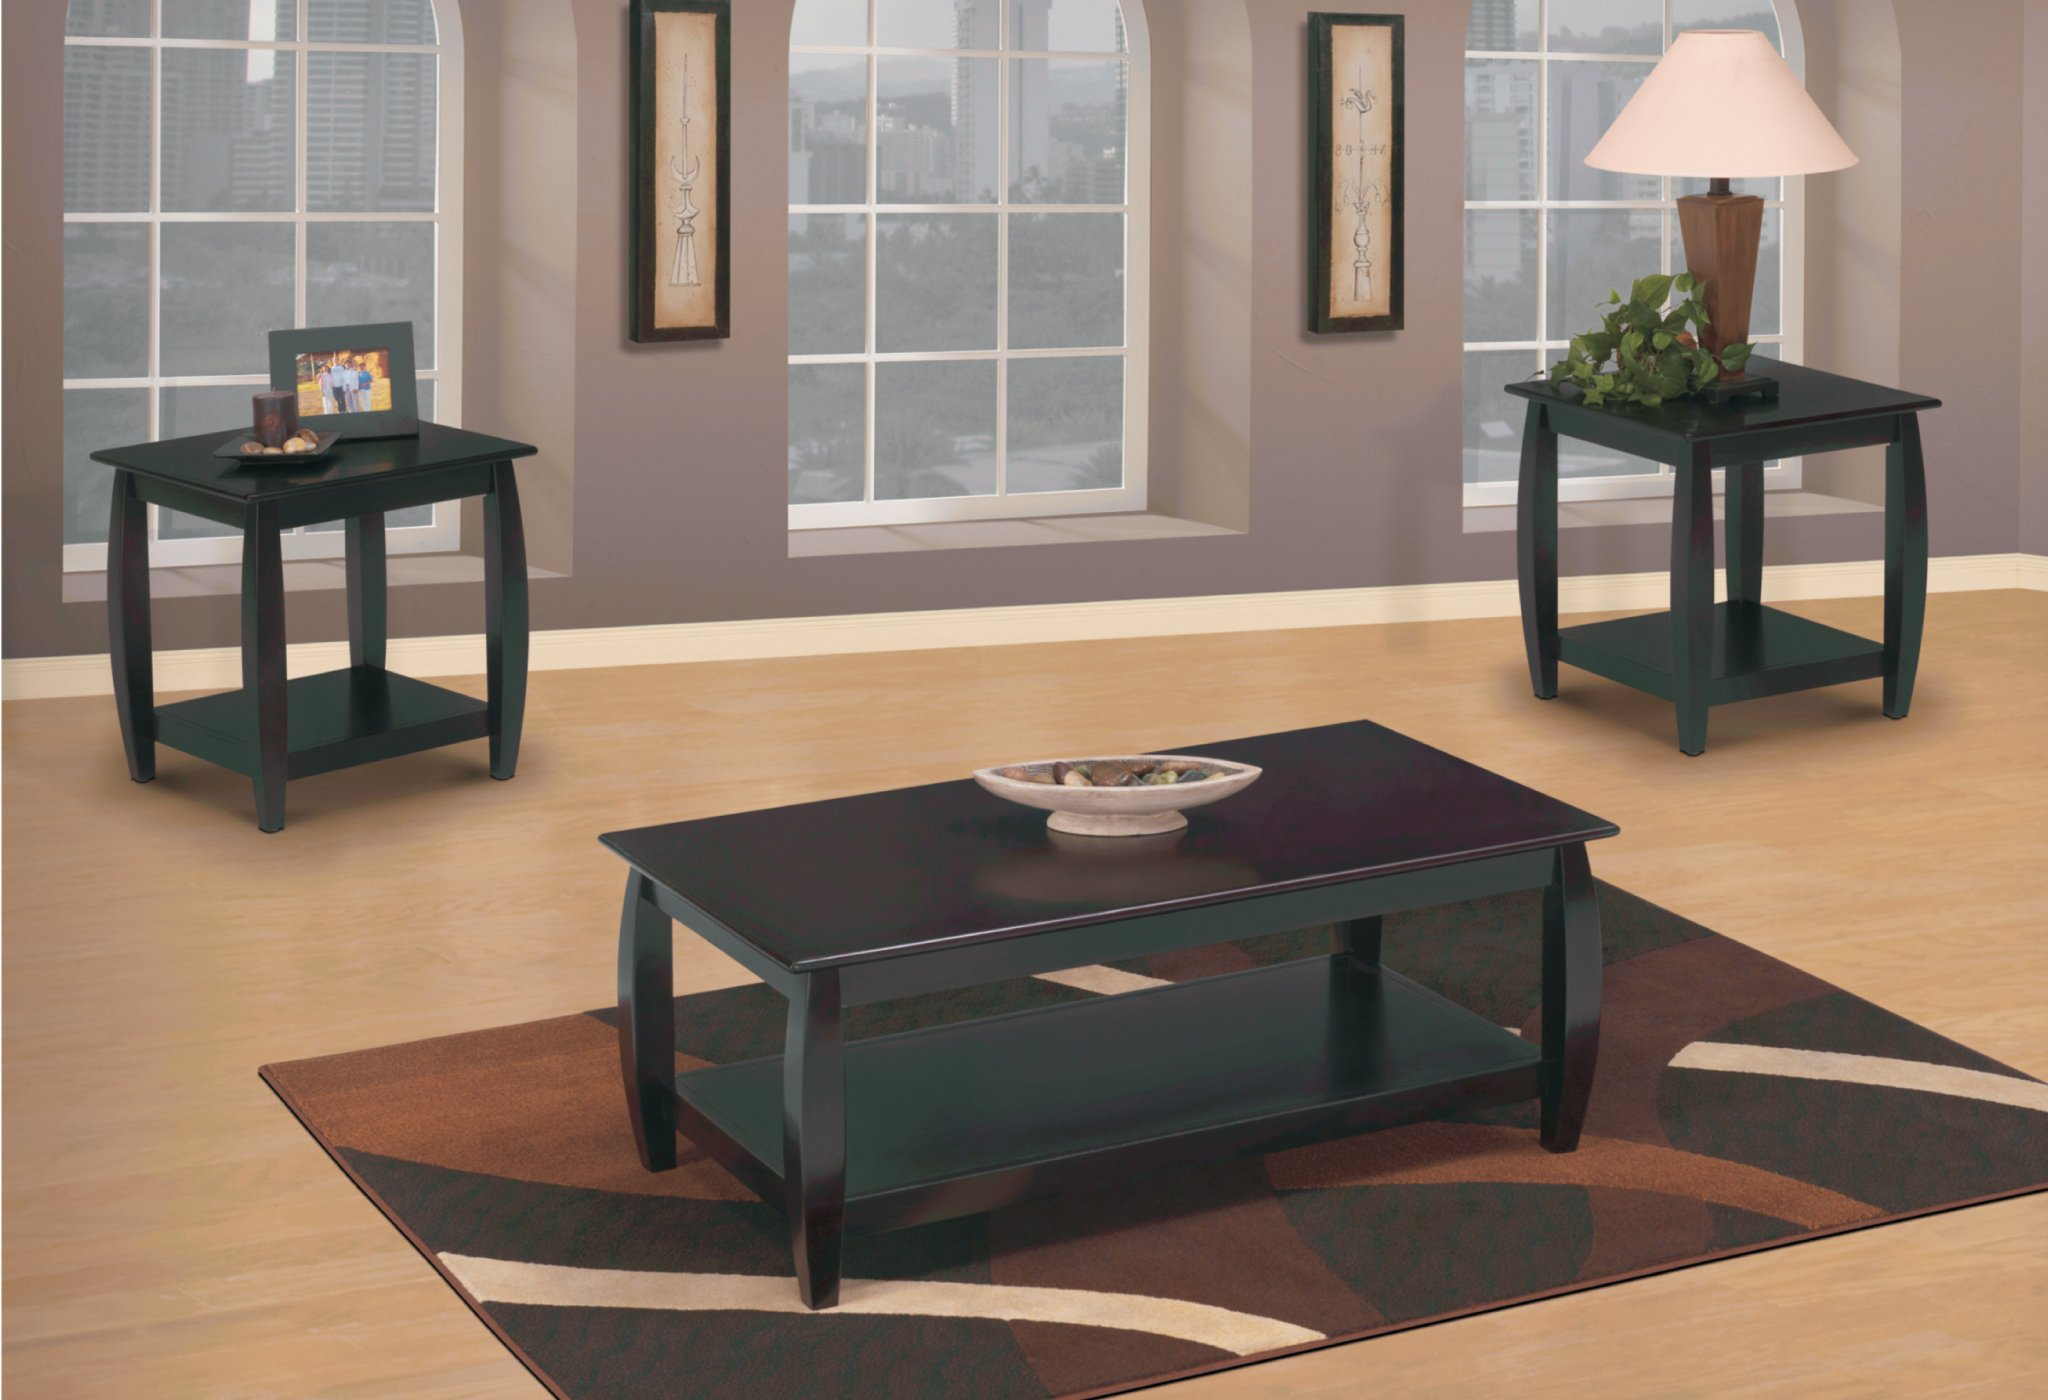 accent tables tagged espresso newclassicfurniture harrison table black half moon console carpet threshold trim beach themed floor lamps metal garden blue leather chair antique